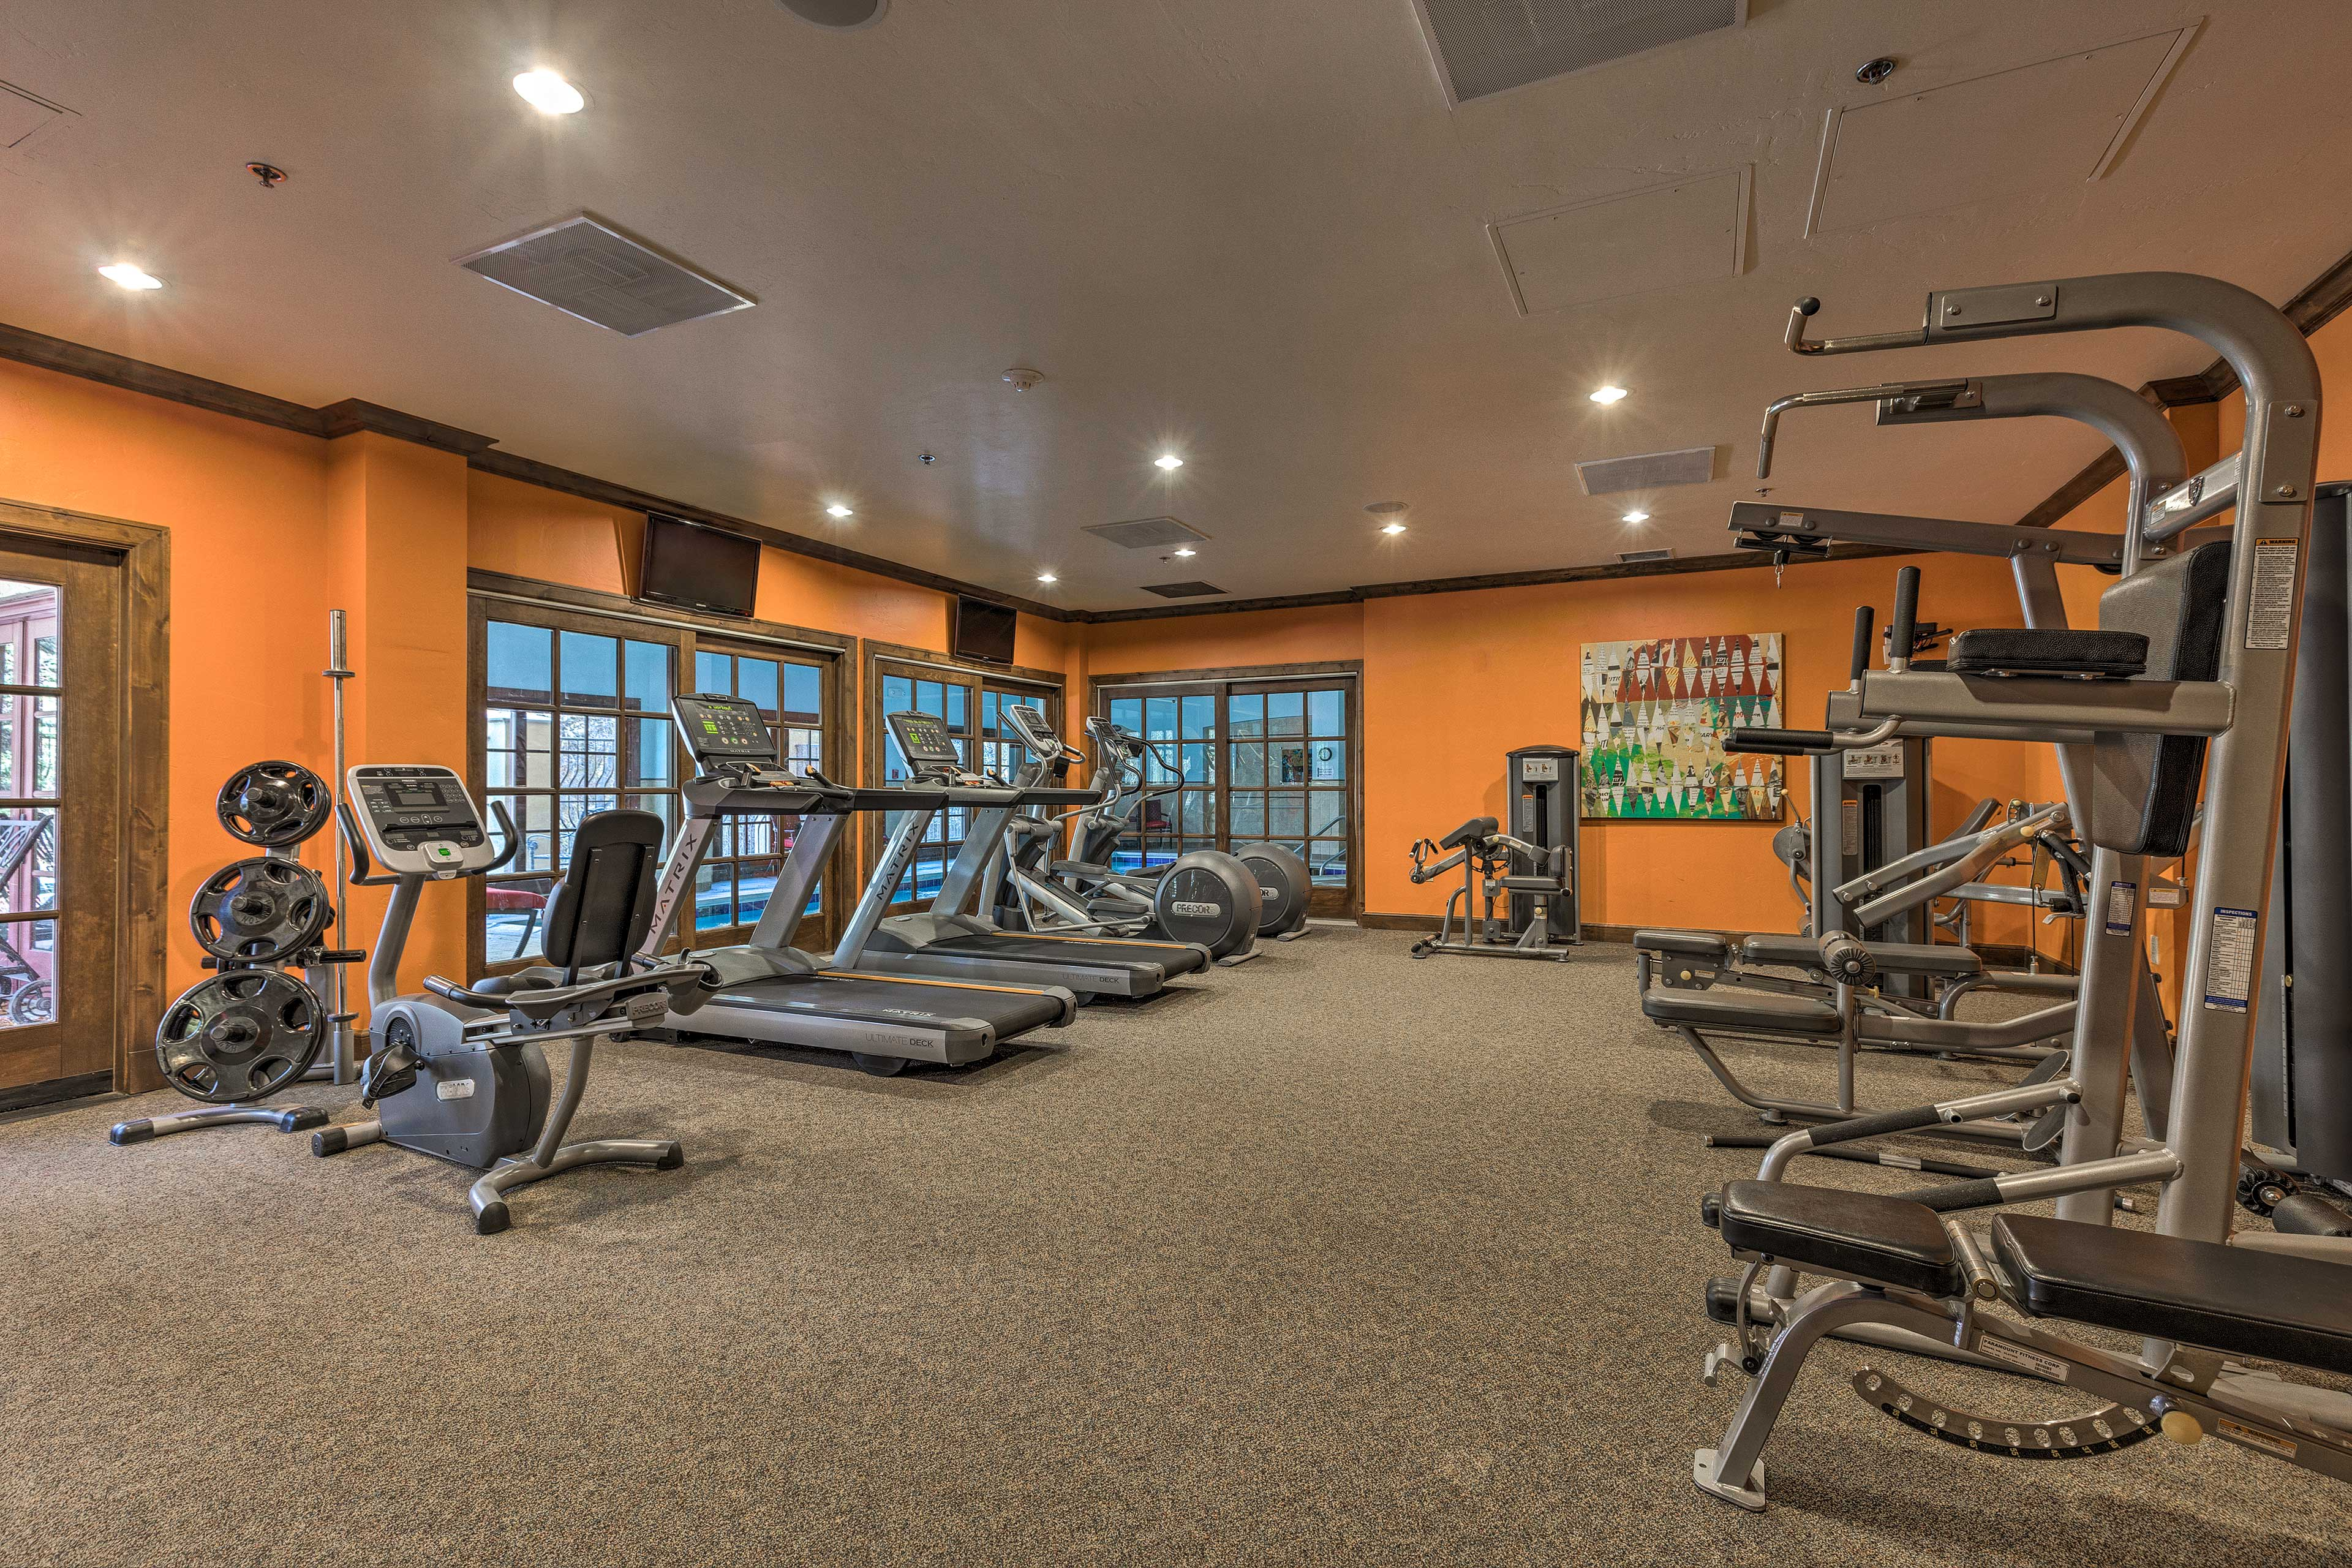 This property also features a fully-equipped fitness center.